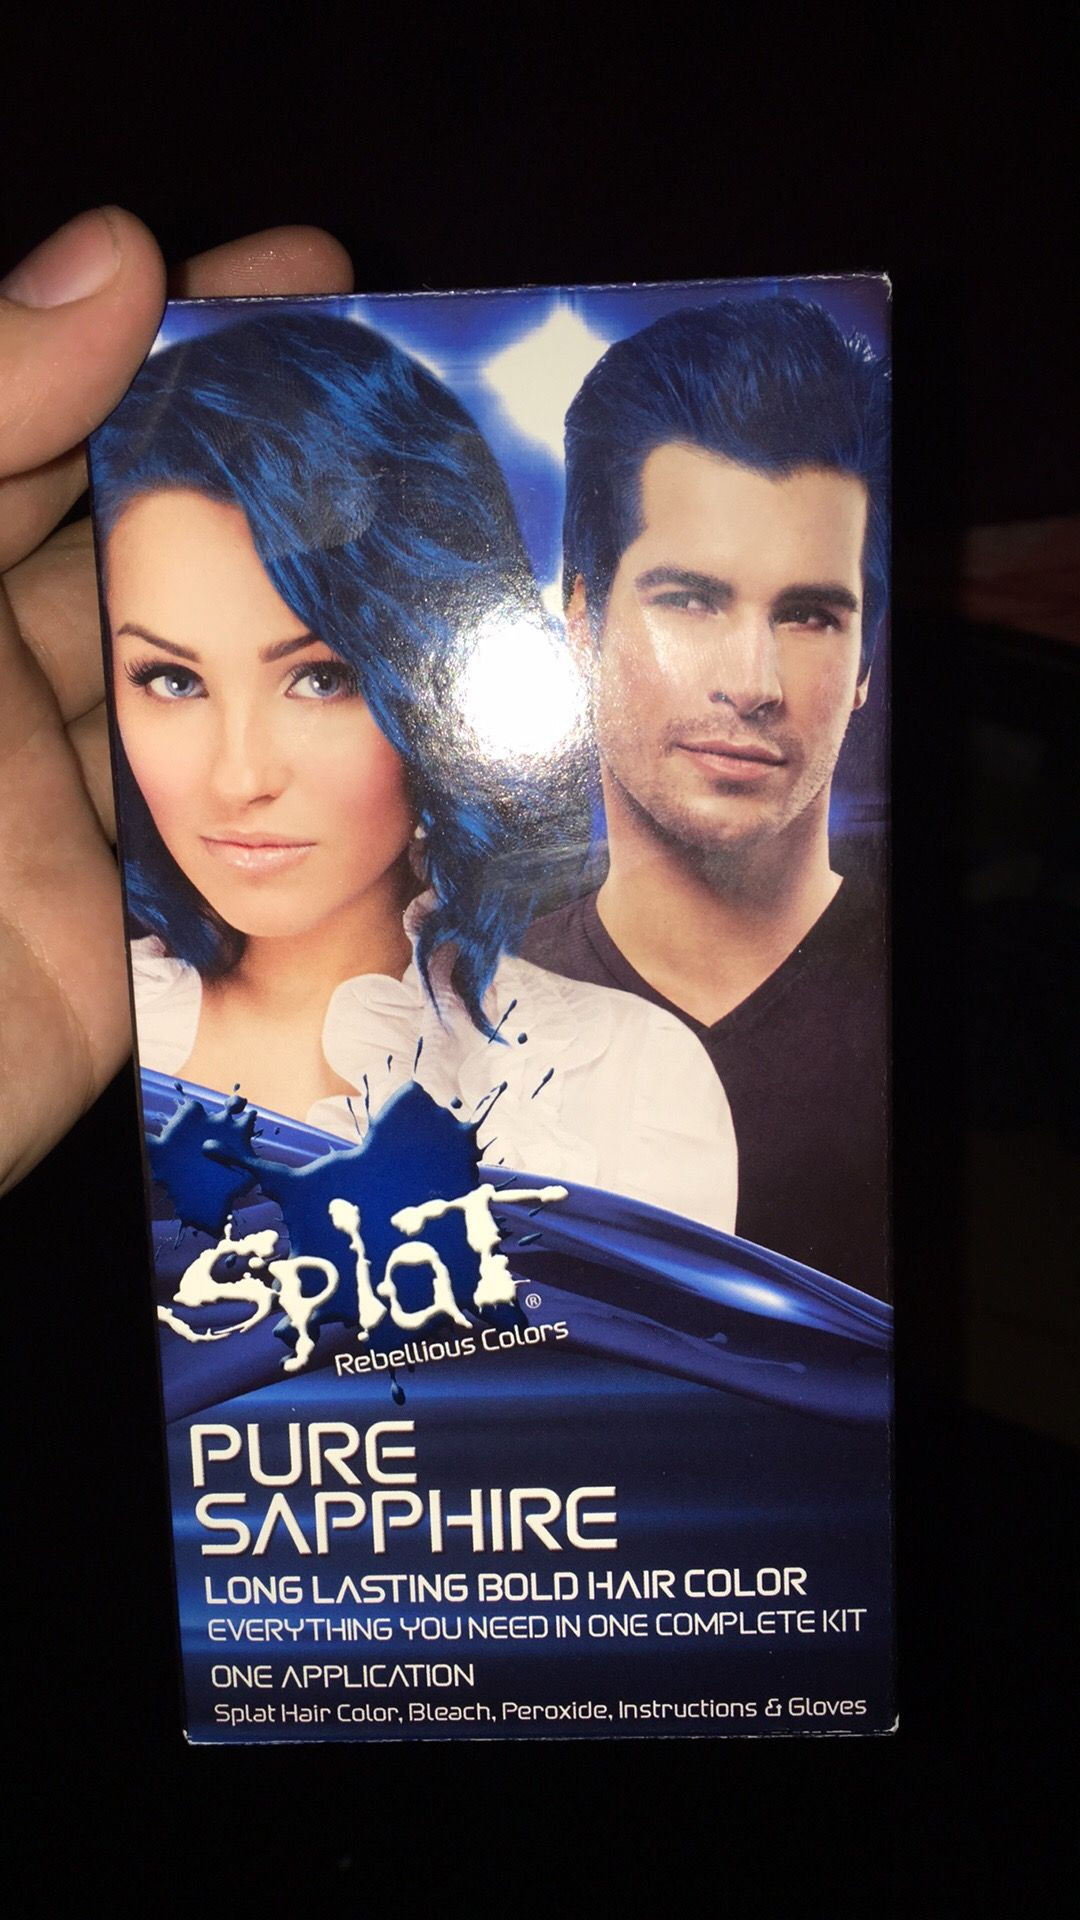 A Personal Experience With Splat Hair Dye Splat Hair Dye Splat Hair Color Hair Dye Removal